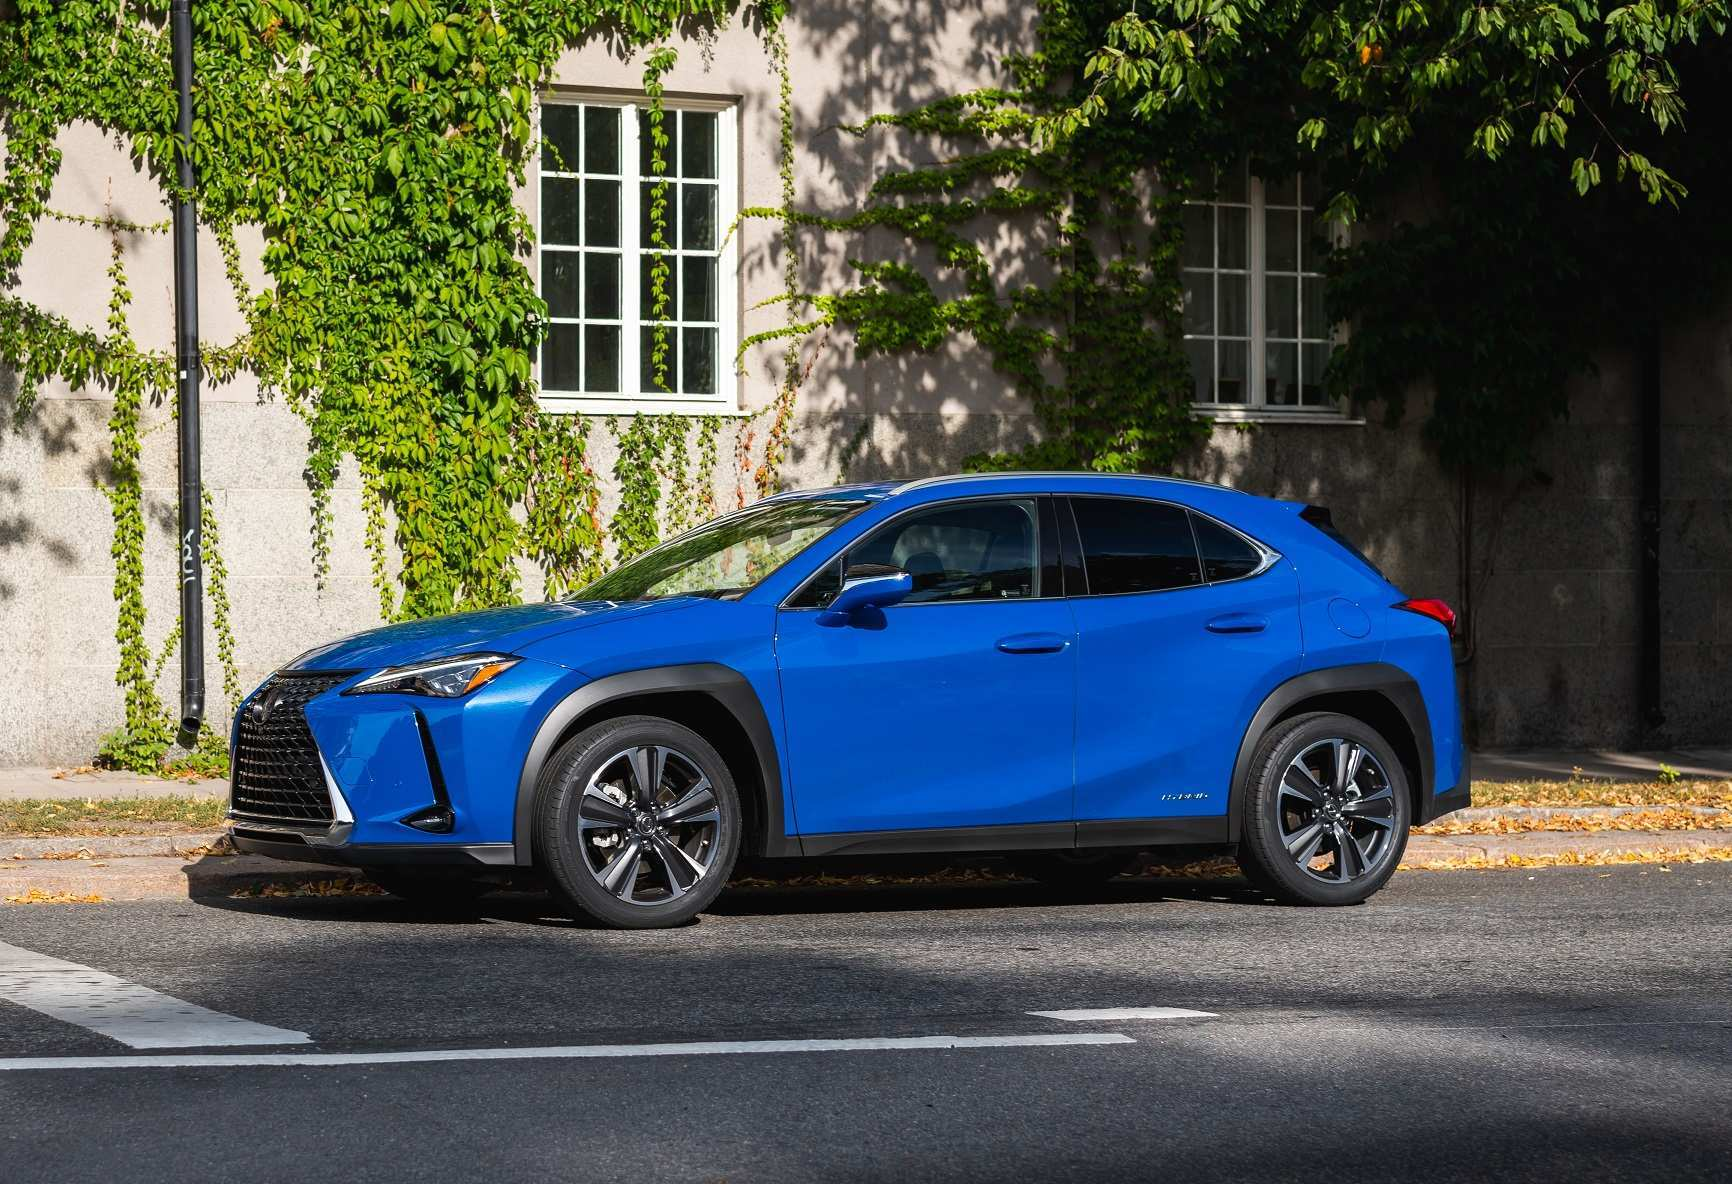 93 The Best 2019 Lexus Ux Price Canada Engine